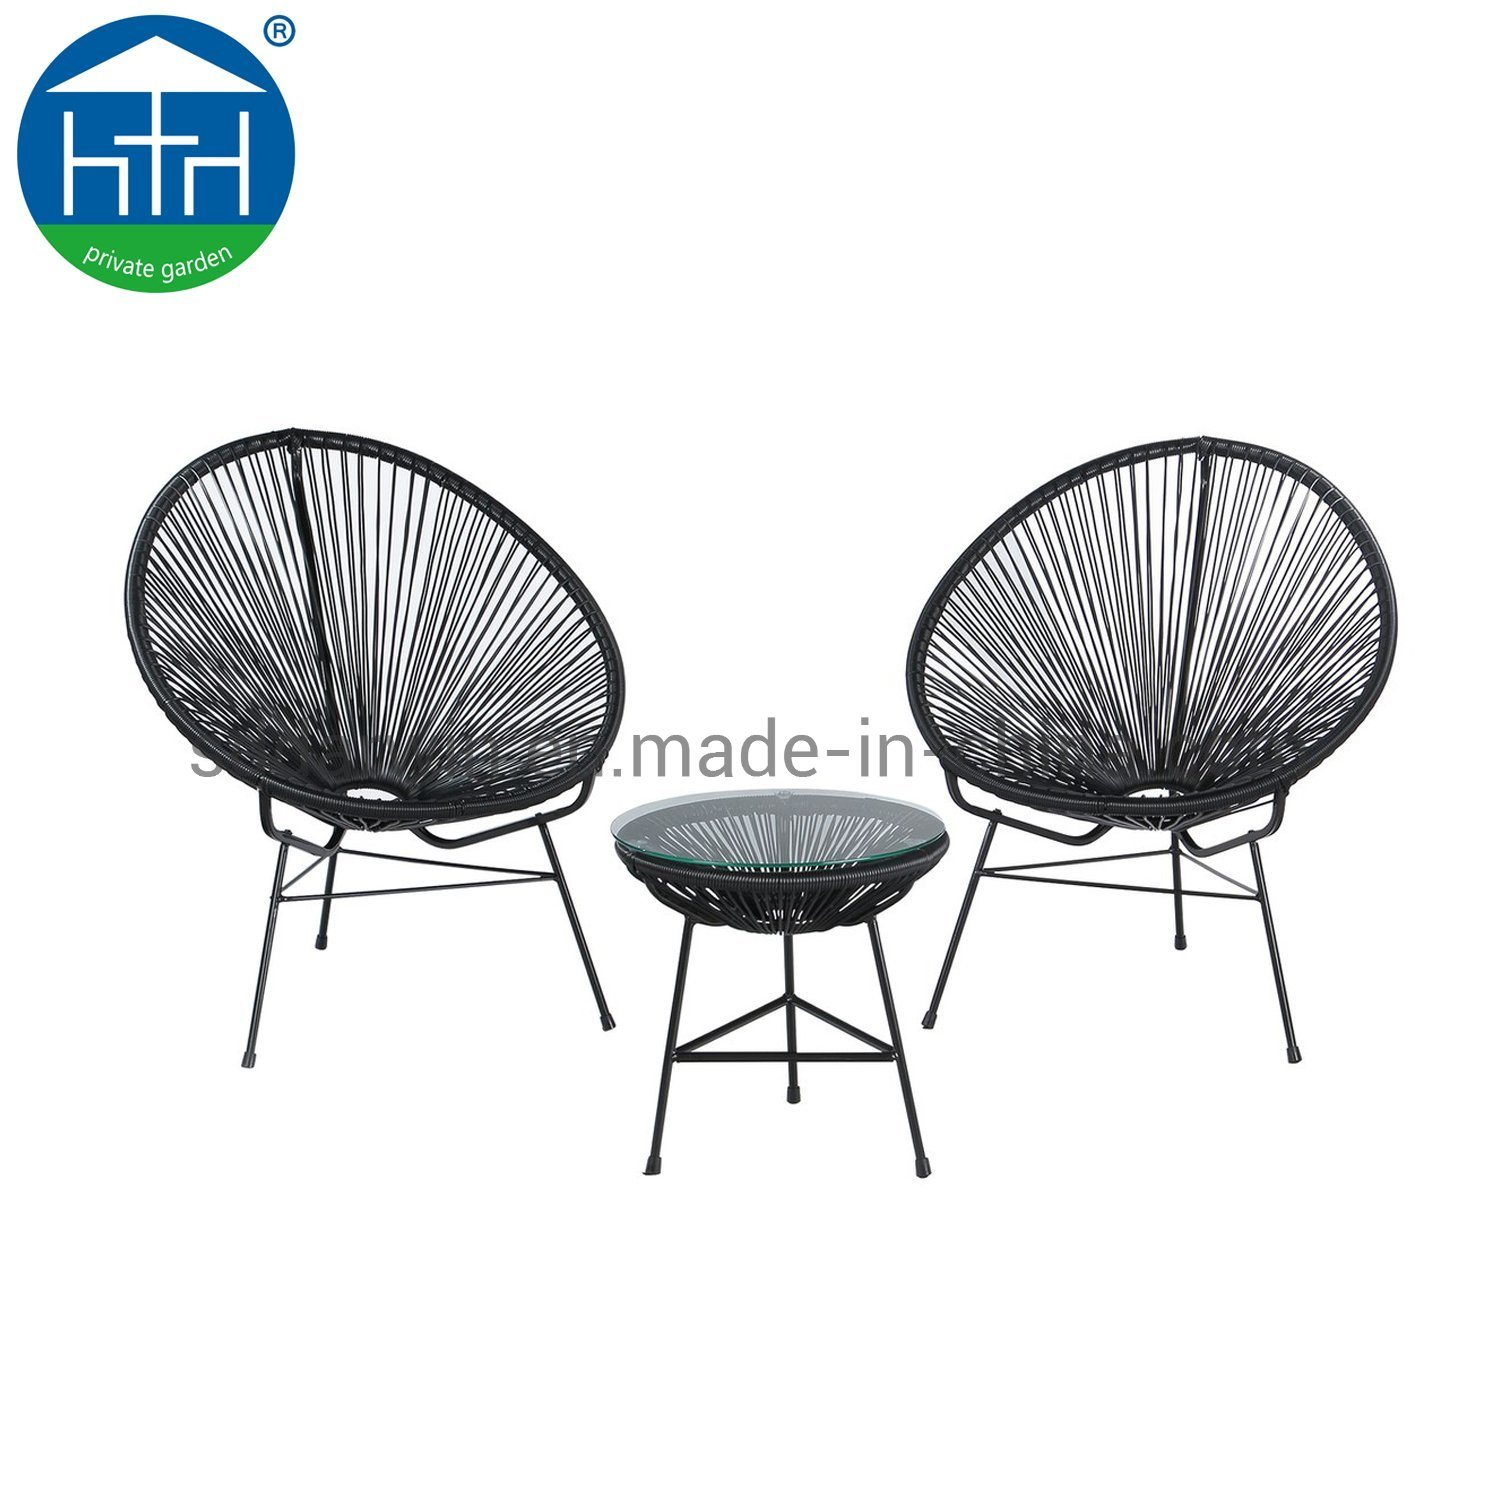 China Pe Rattan Wicker Acapulco Chair For Outdoor Garden Furniture China Outdoor Chair Pe Wicker Chair